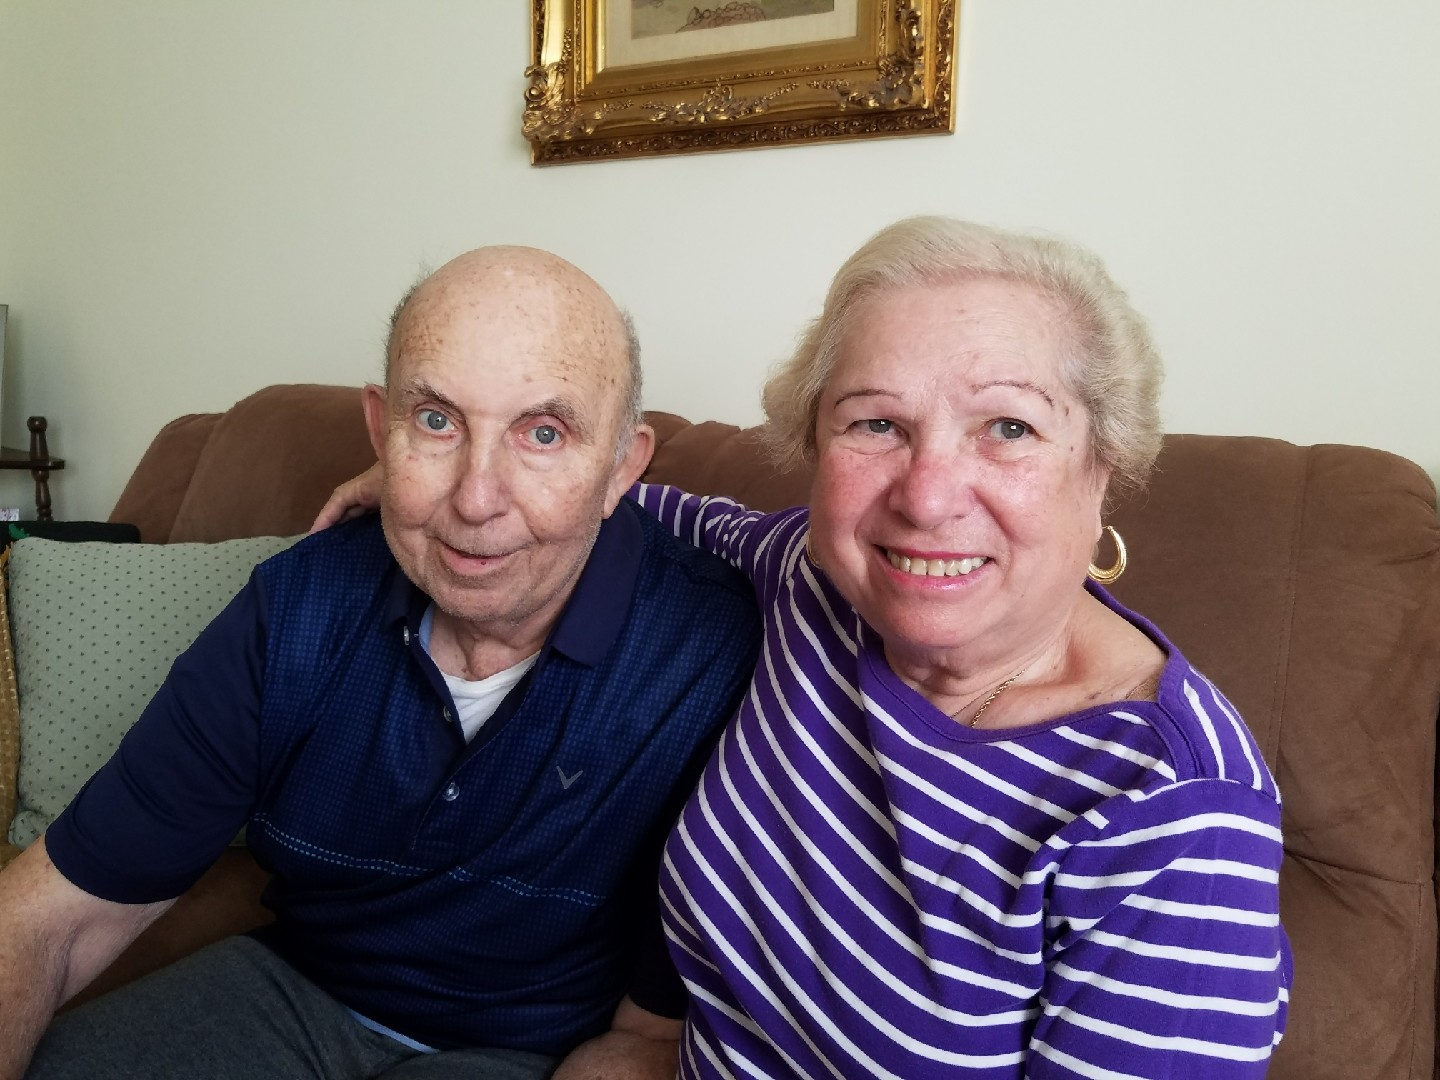 Livia and Tibor Horovitz in their Bellmore home. They have lived there with their daughter, Debbie, and her family since 2003.